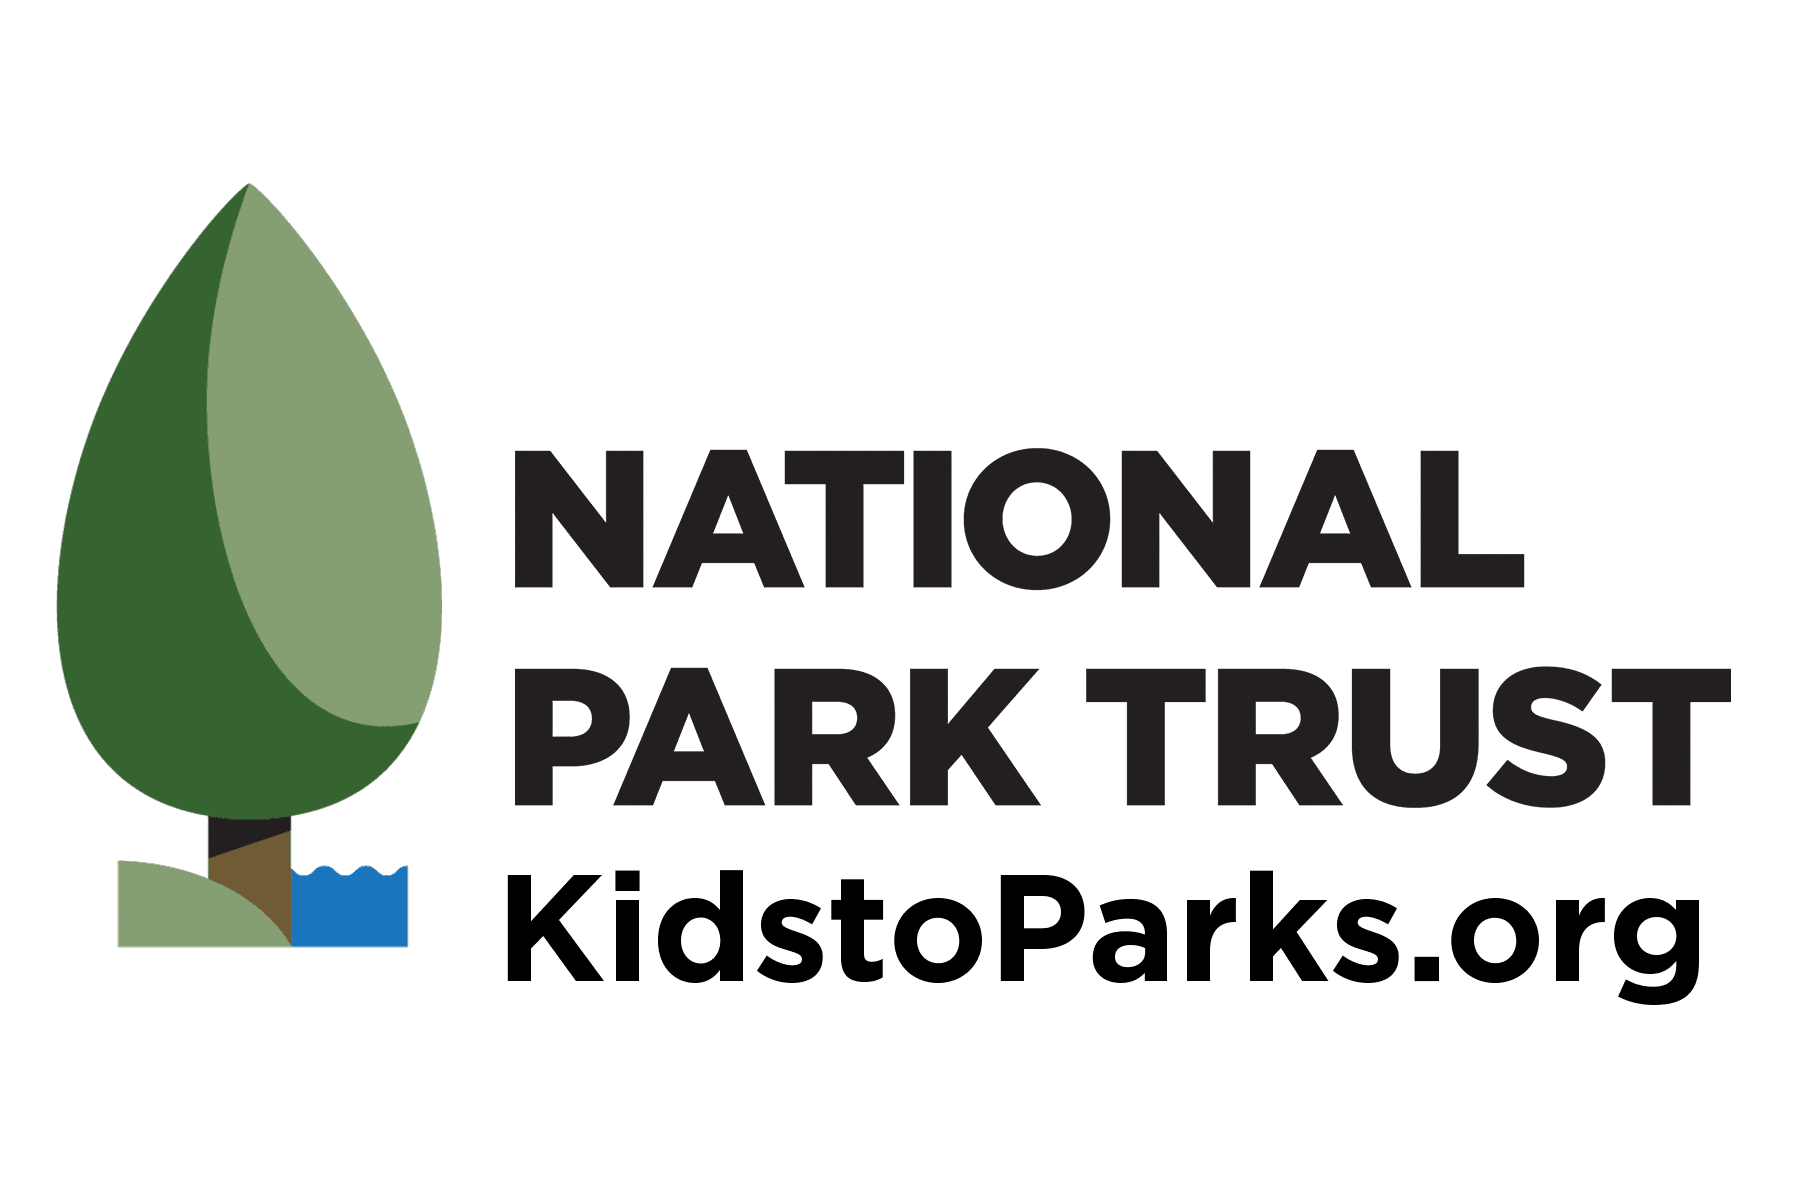 Kids to Parks Day logo